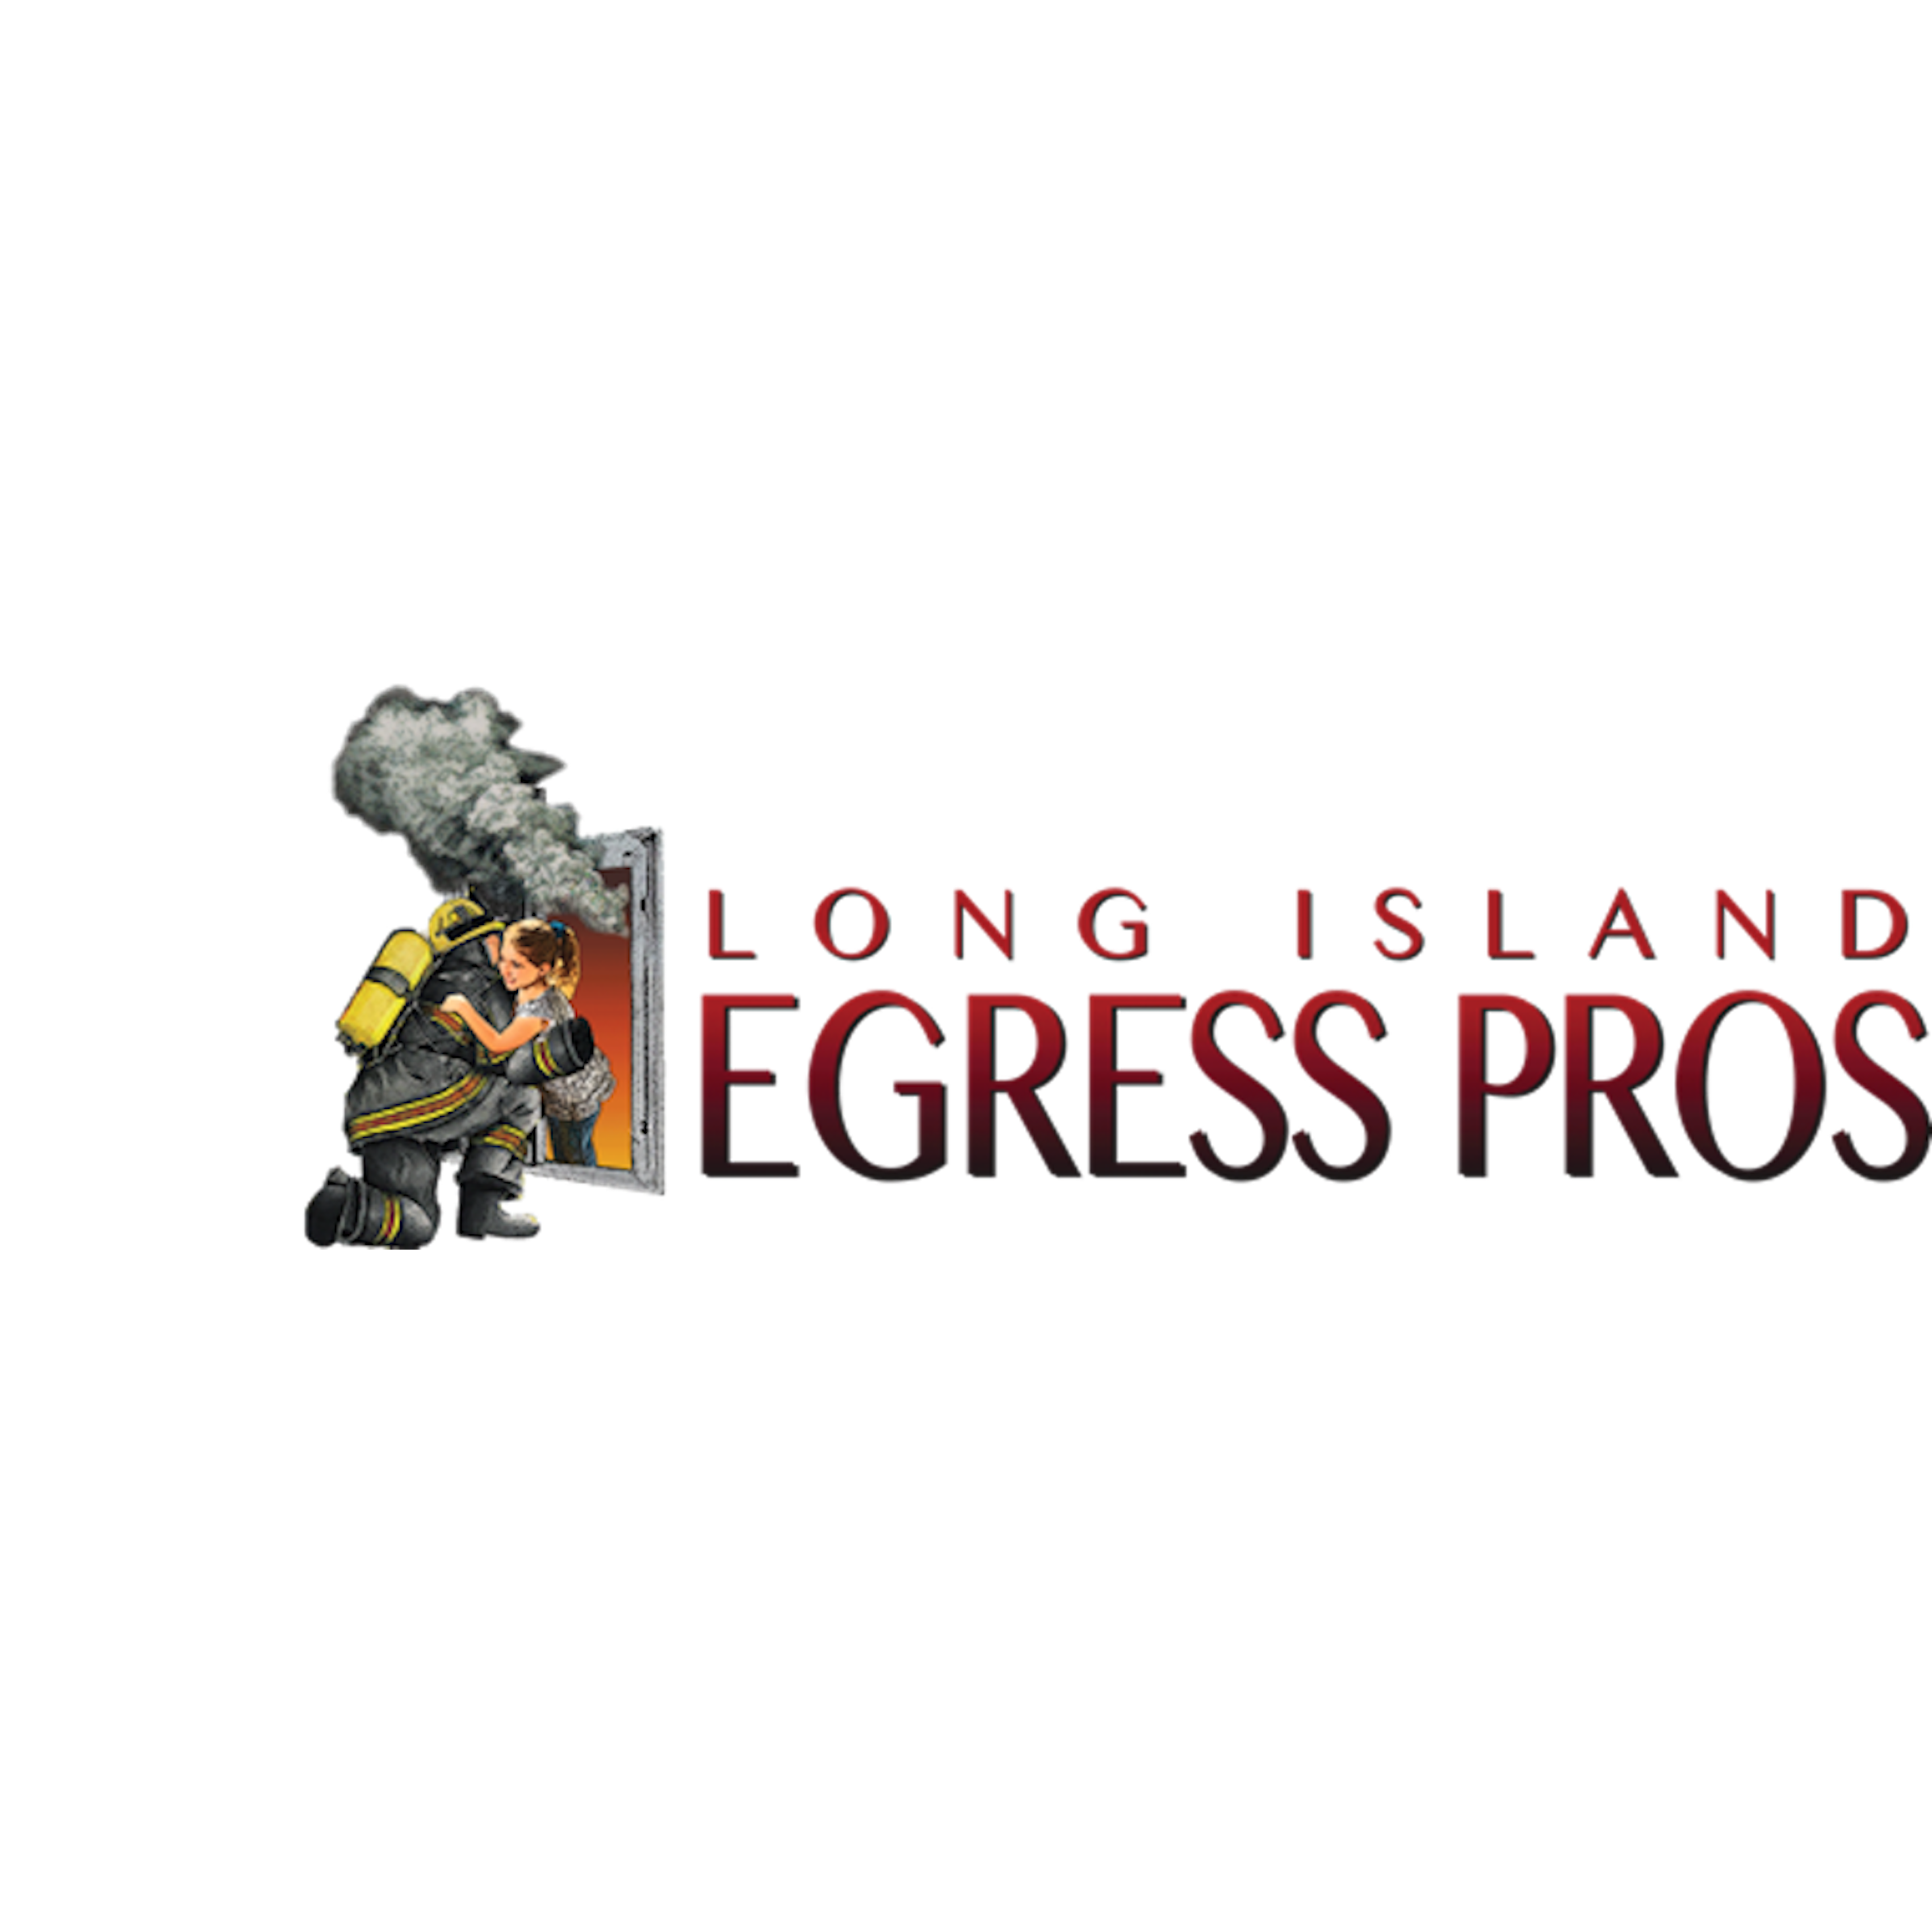 Long Island Egress Pros